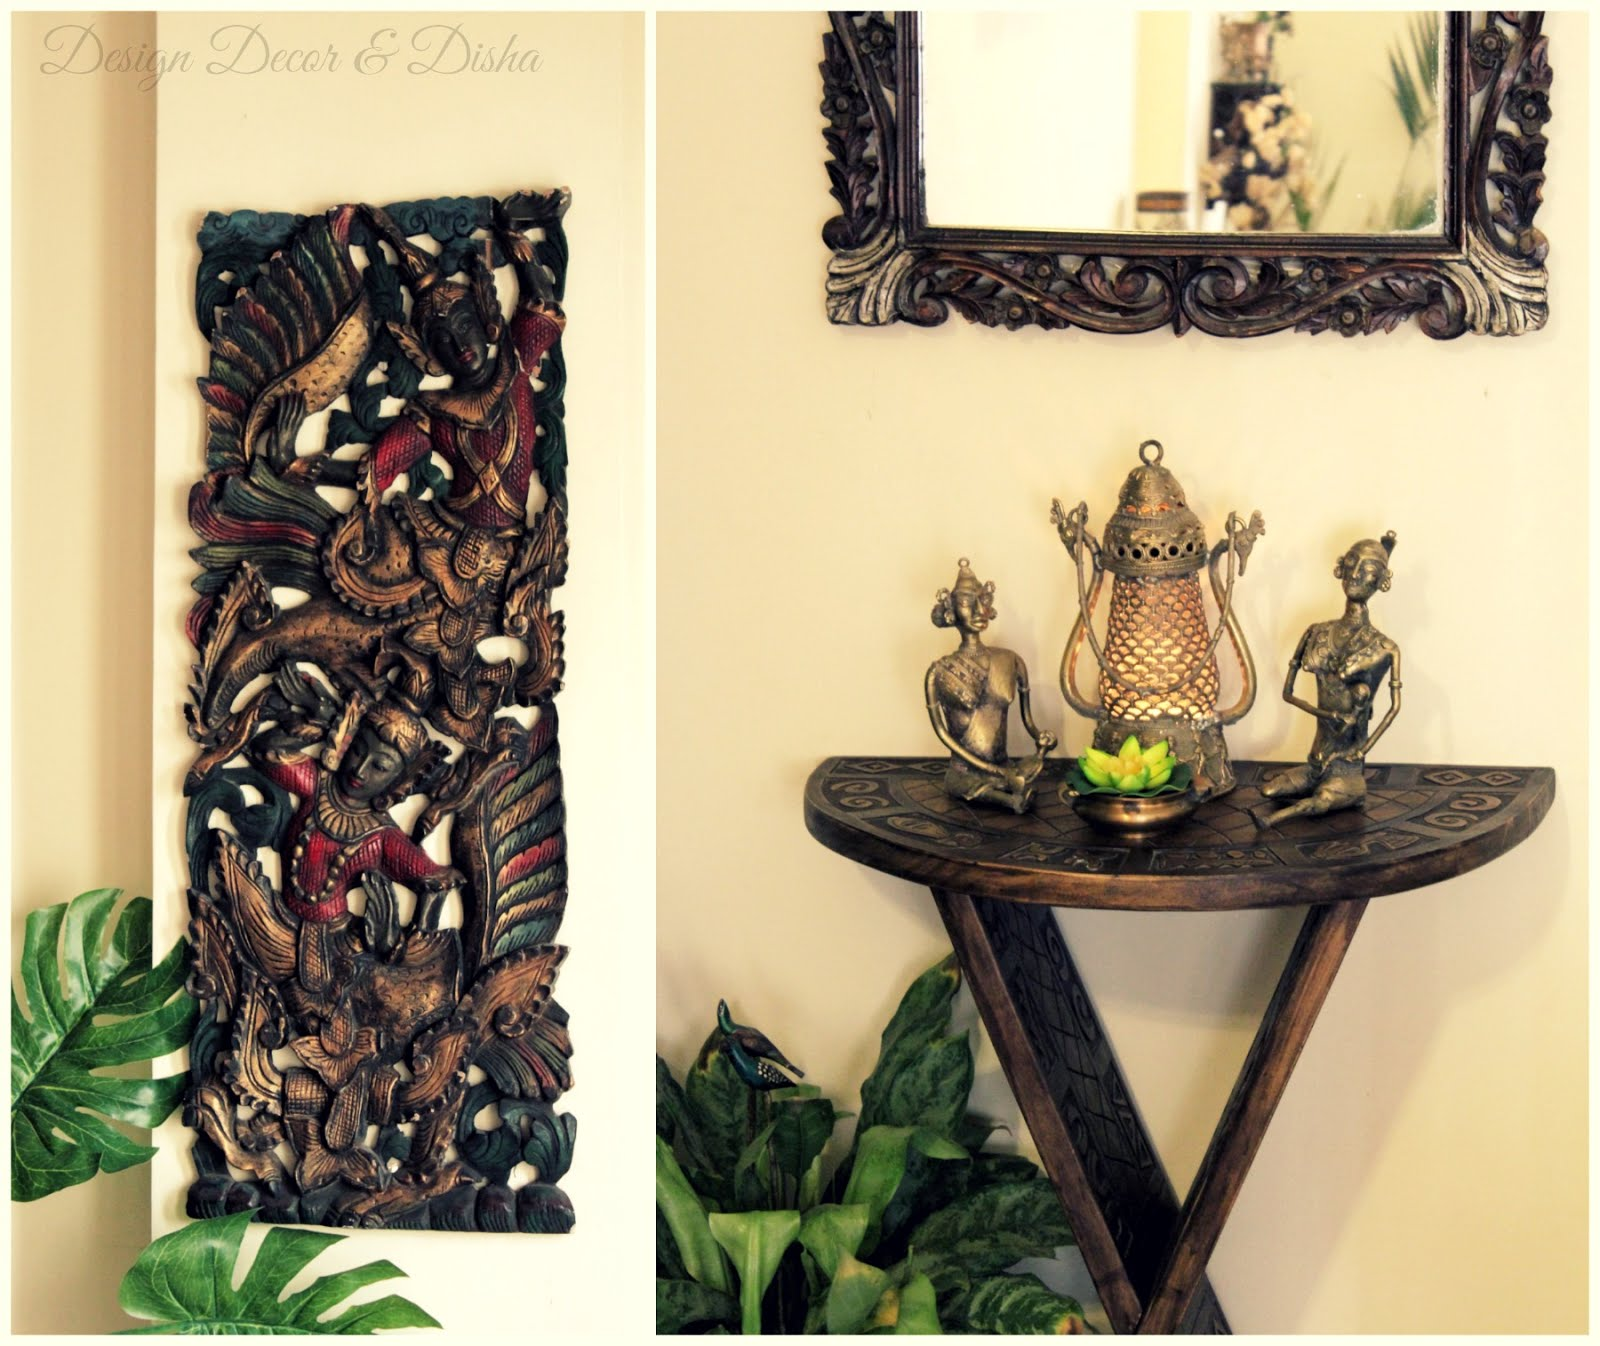 Decorative Items Design Decor And Disha An Indian Design And Decor Blog Home